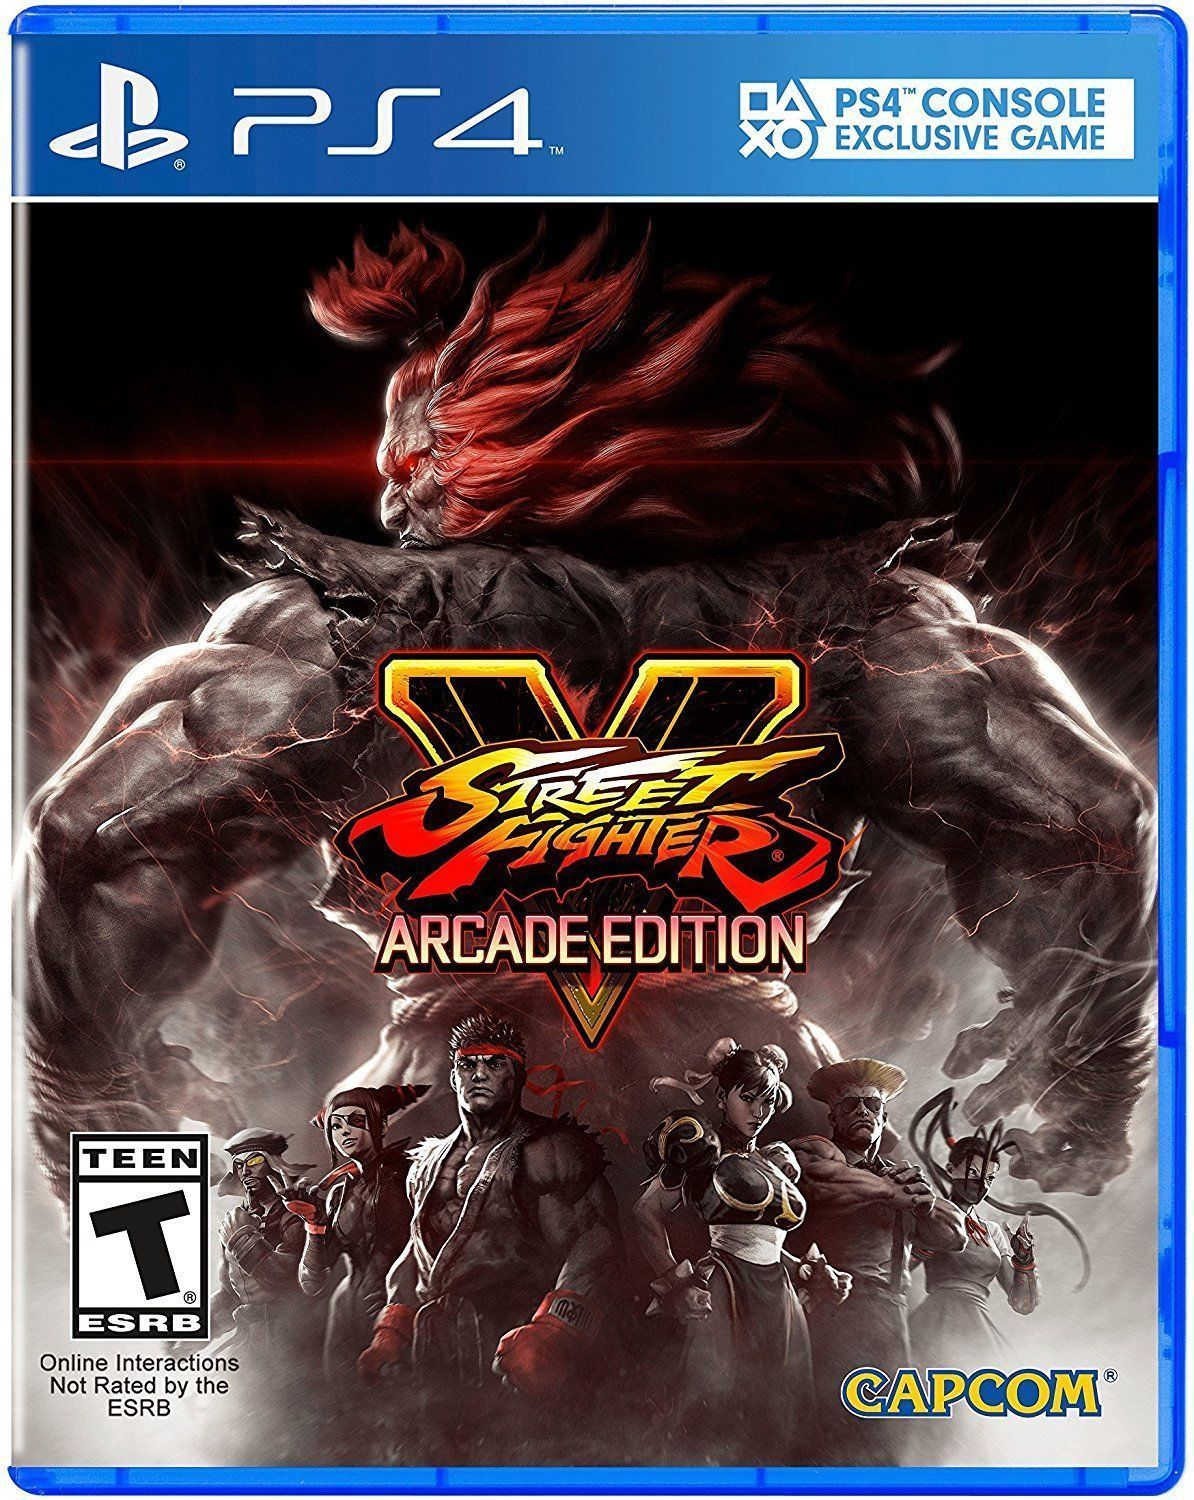 Street Fighter V Arcade Edition Sony Playstation 4 2018 Ps4 Skyrim Special Video Game New